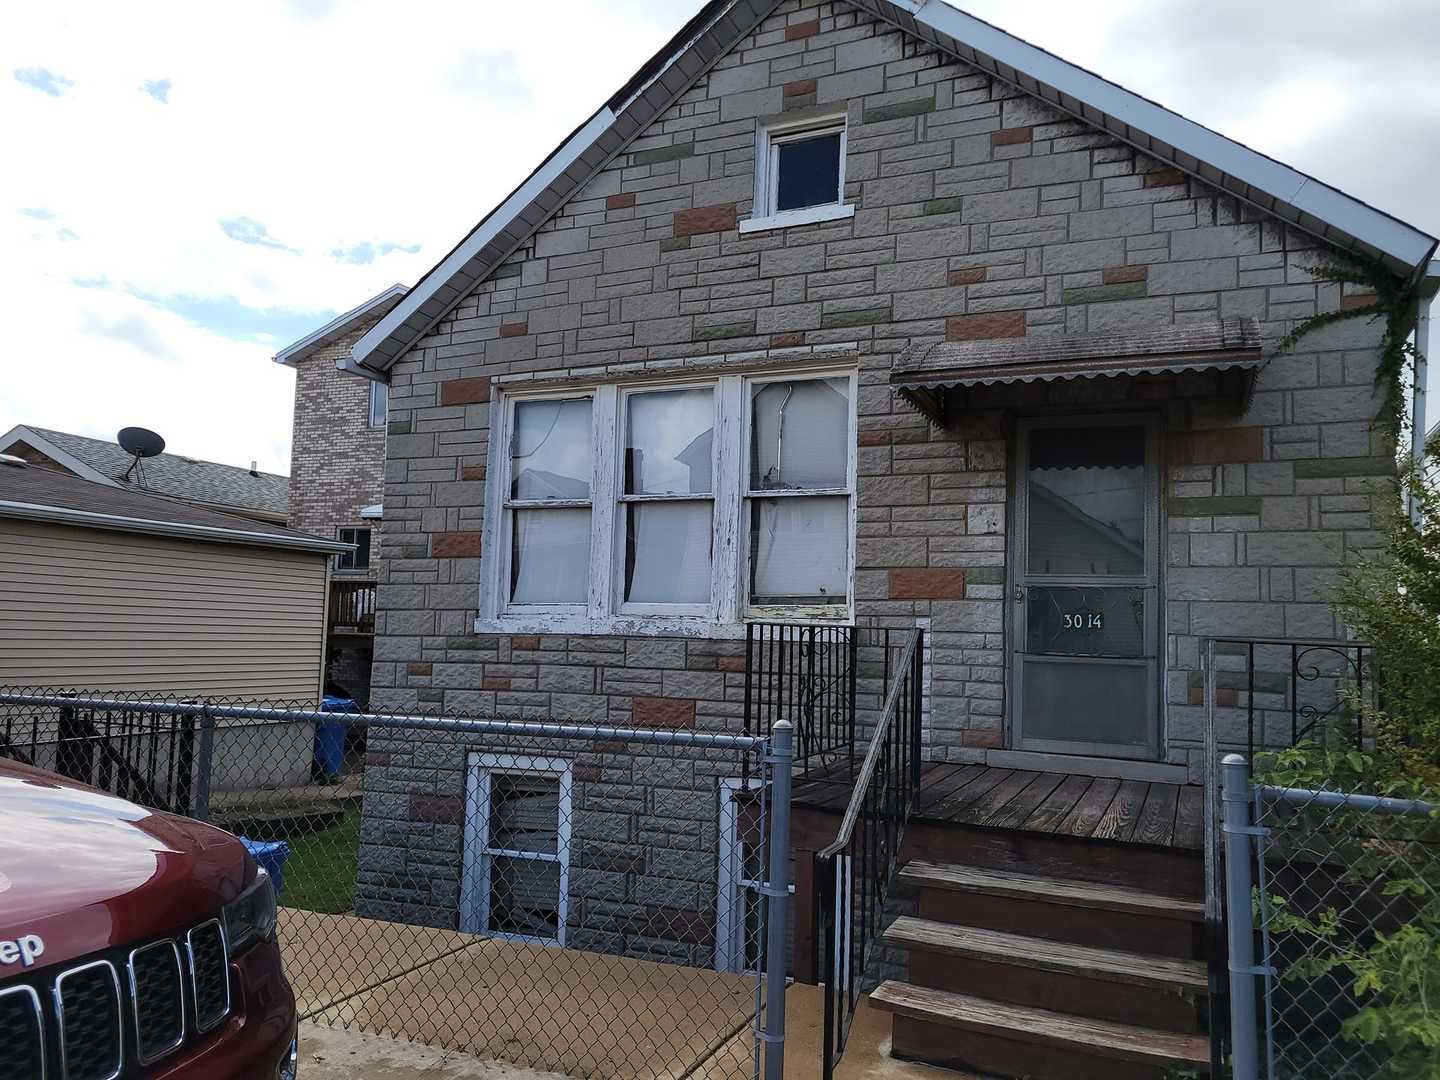 3029 S Keeley Street, Chicago, IL 60608 - #: 11238575